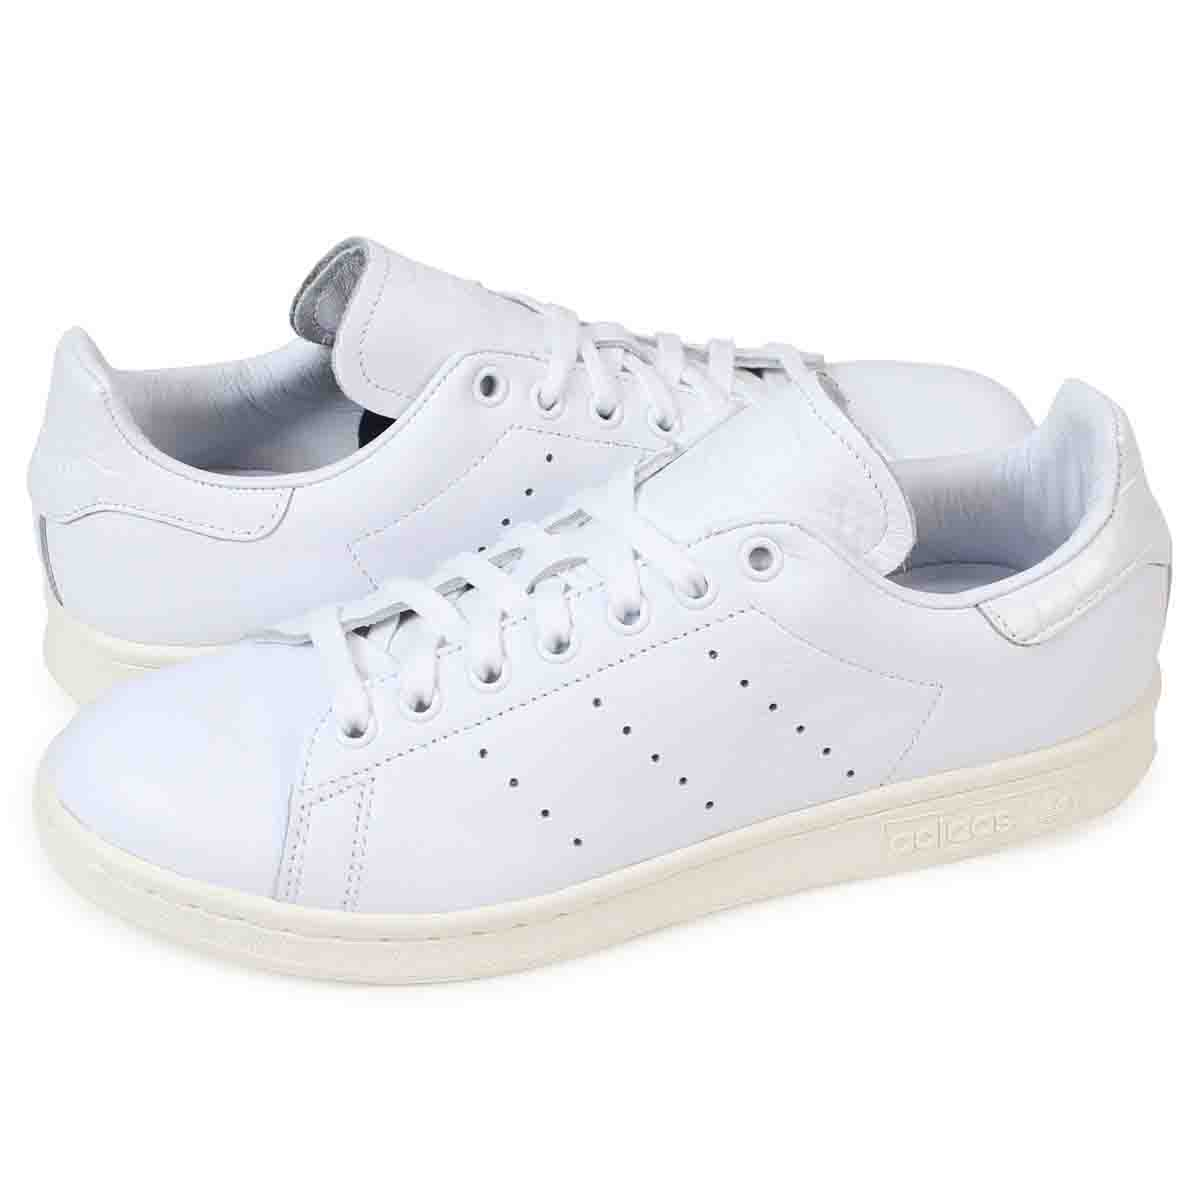 huge discount baebf 6c9b1 adidas originals STAN SMITH originals Stan Smith Adidas Lady's men sneakers  BZ0466 shoes white [load planned Shinnyu load in reservation product 12/7  ...